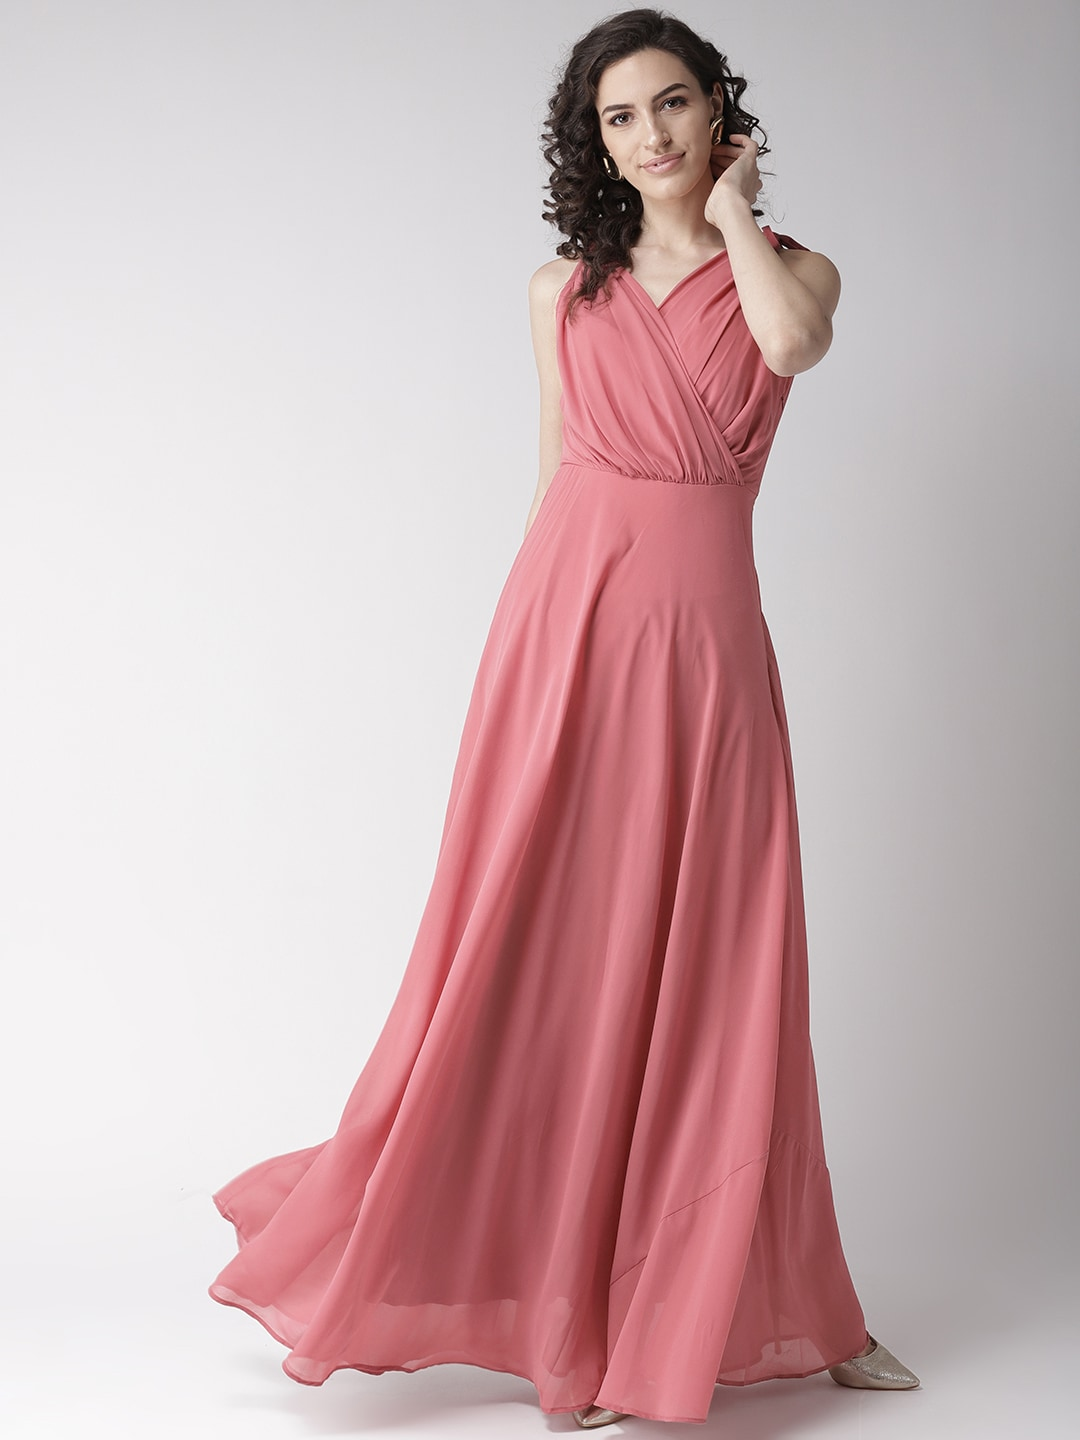 ef9ce15ca Gowns - Shop for Gown Online at Best Price